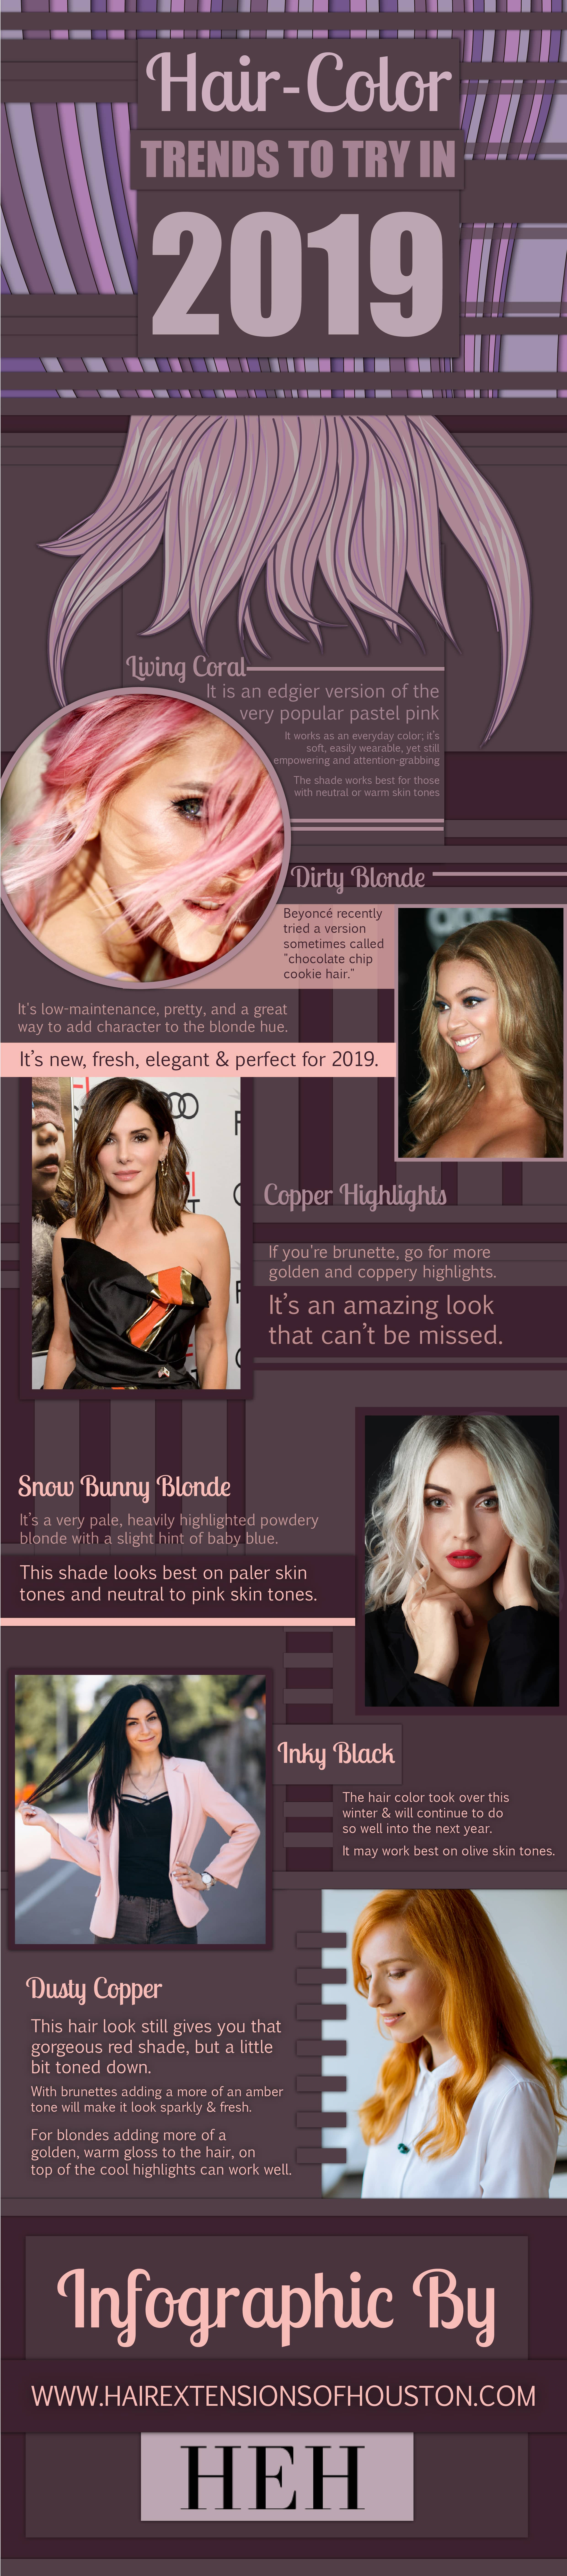 Hair Color Trends To Try in 2019